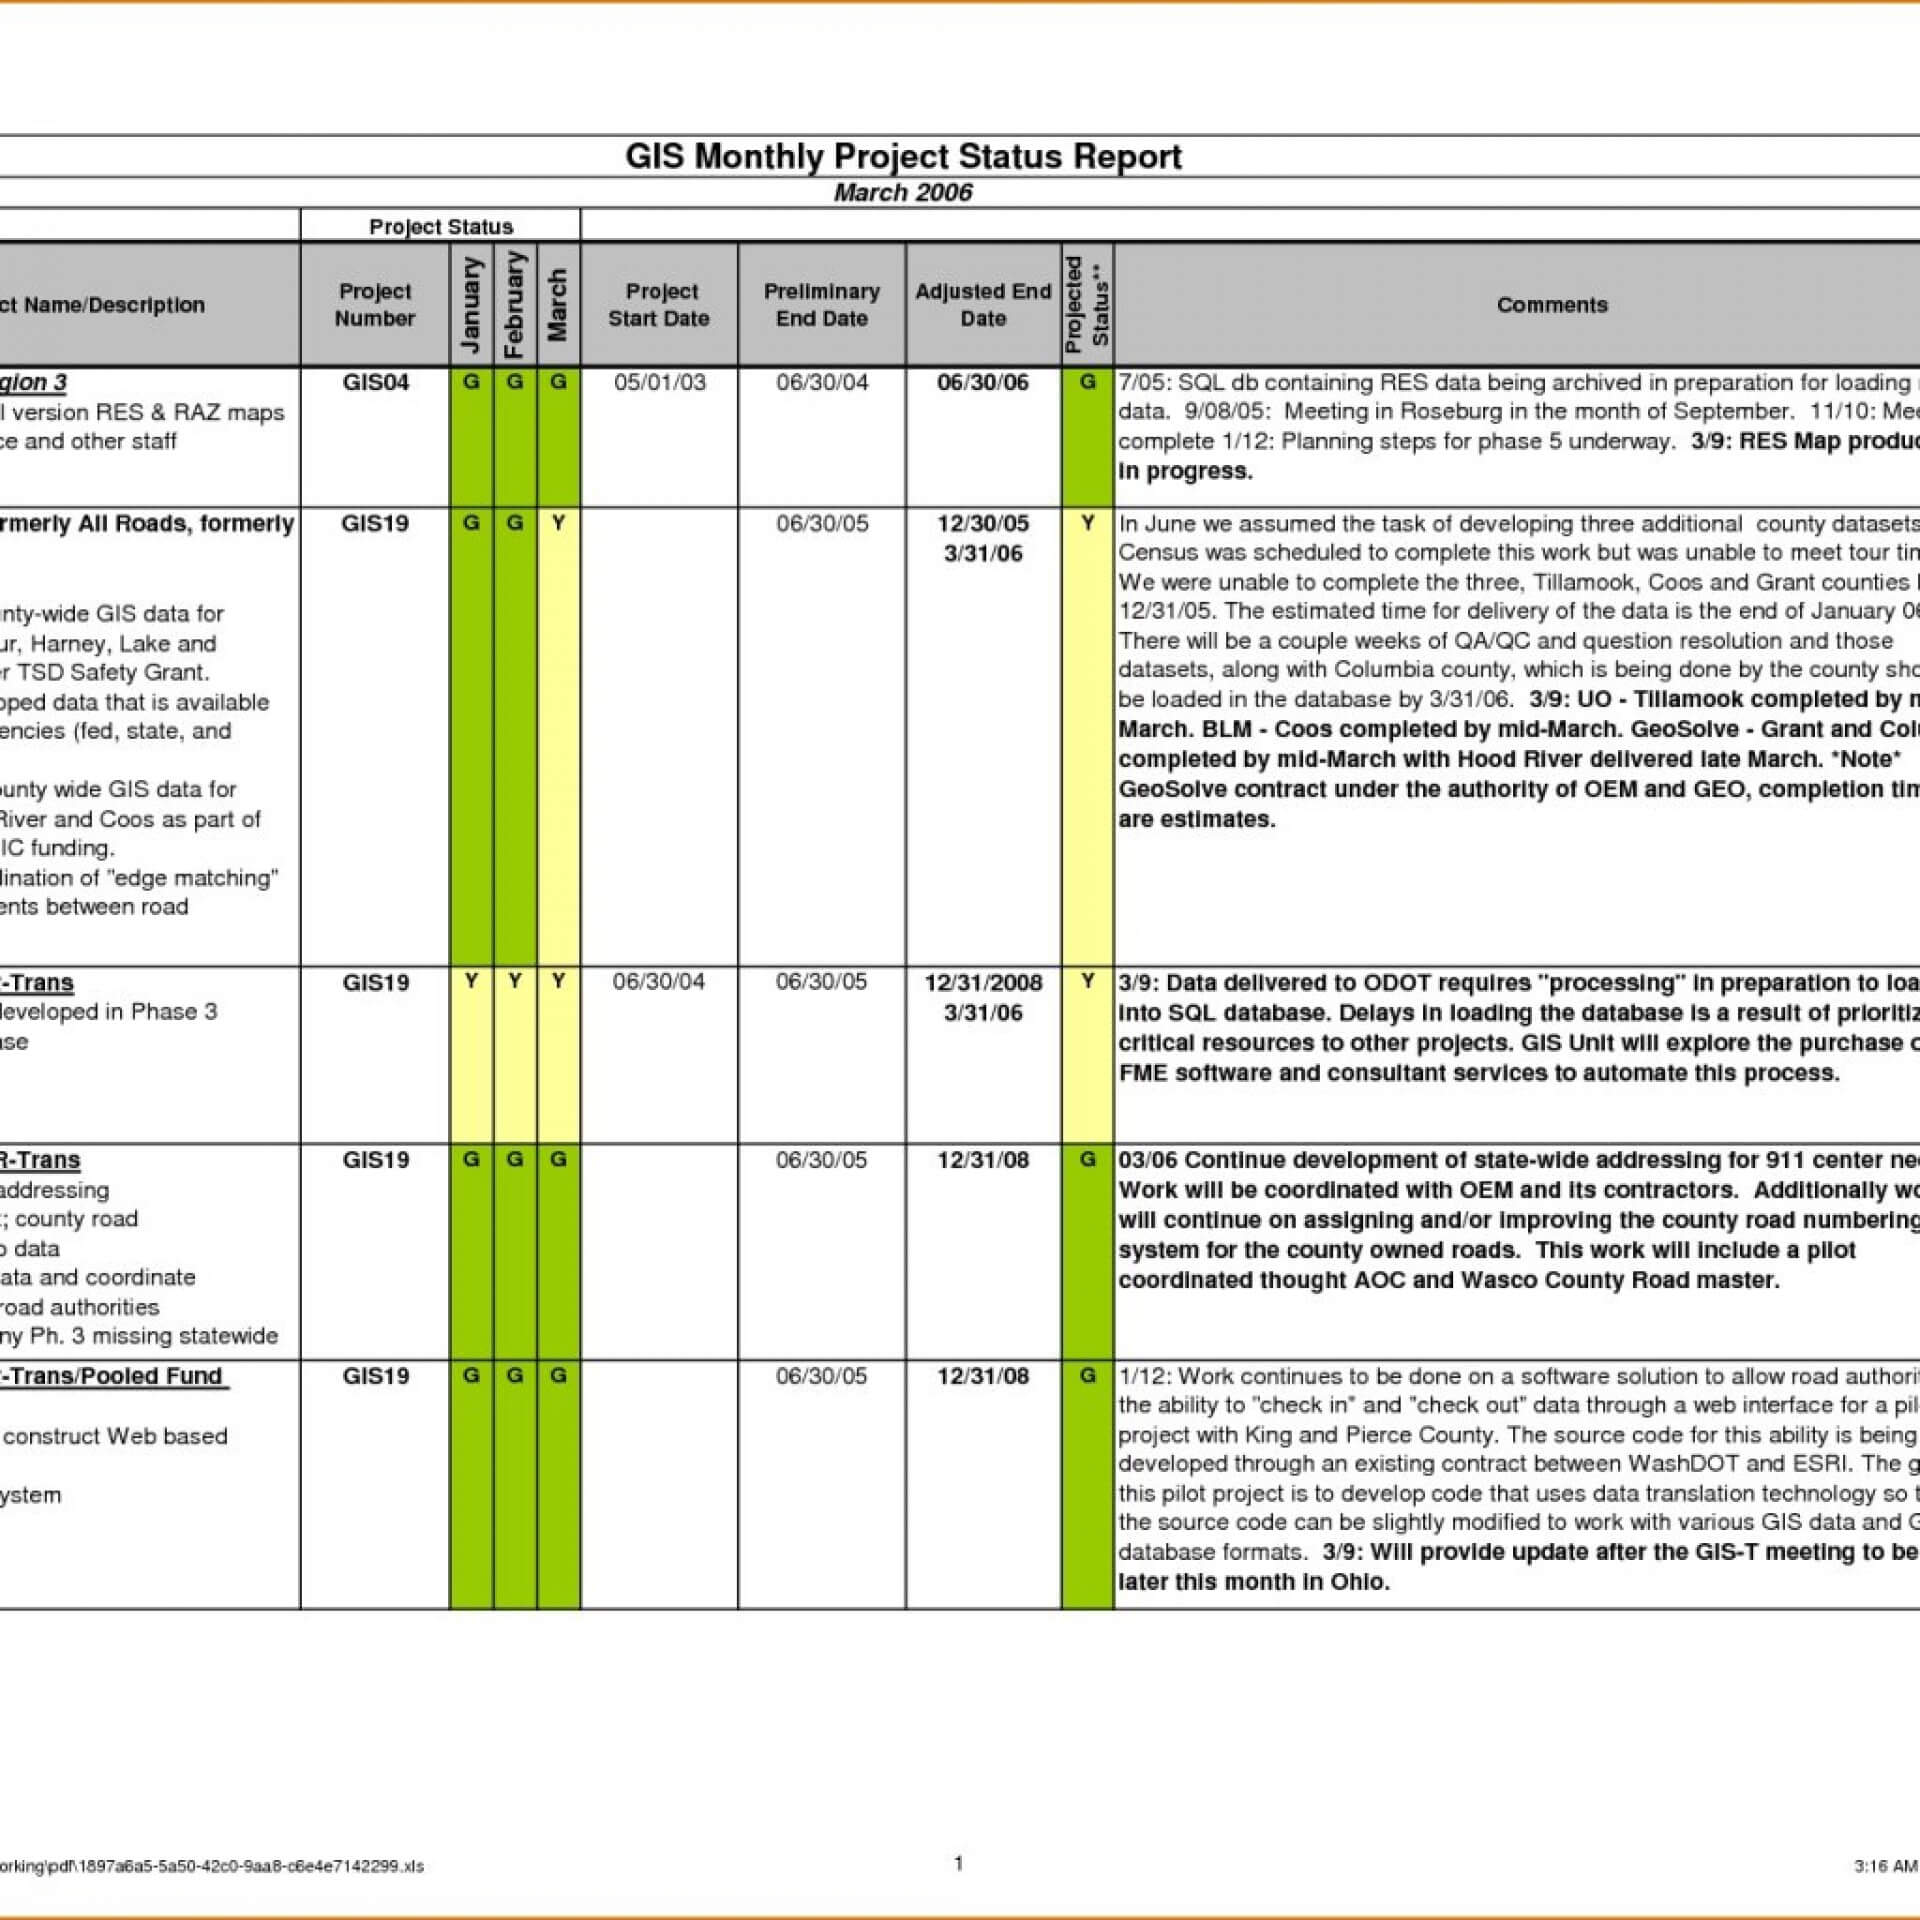 010 Weekly Status Report Template Ideas Astounding Excel With Regard To Project Status Report Template Excel Download Filetype Xls